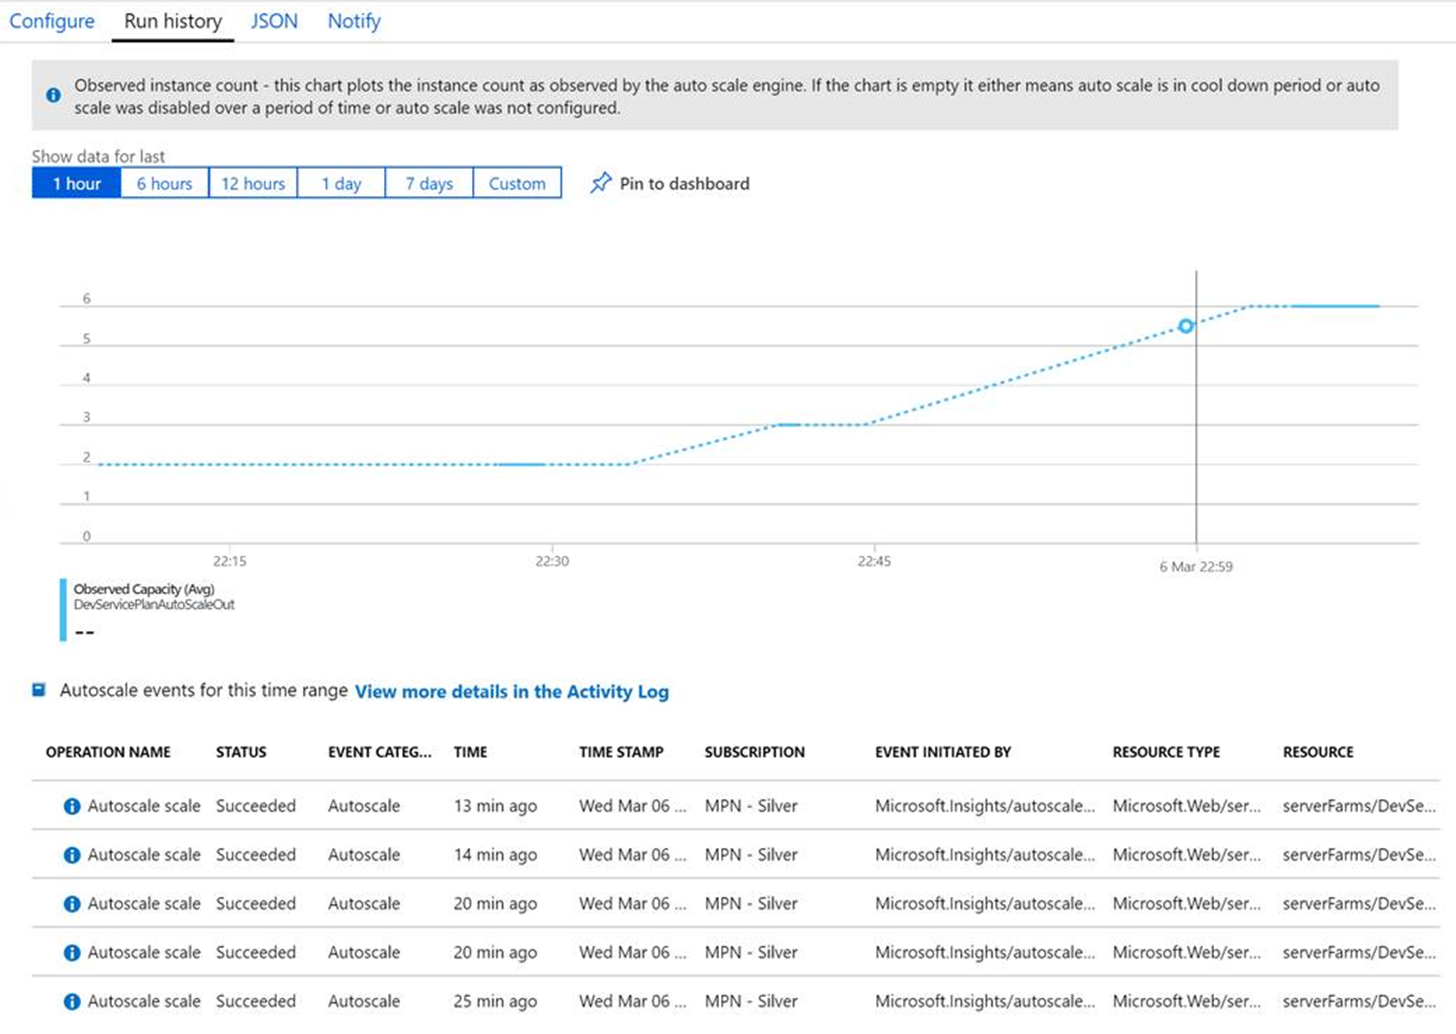 Azure App Service: My Experience with Auto-Scale In Failing